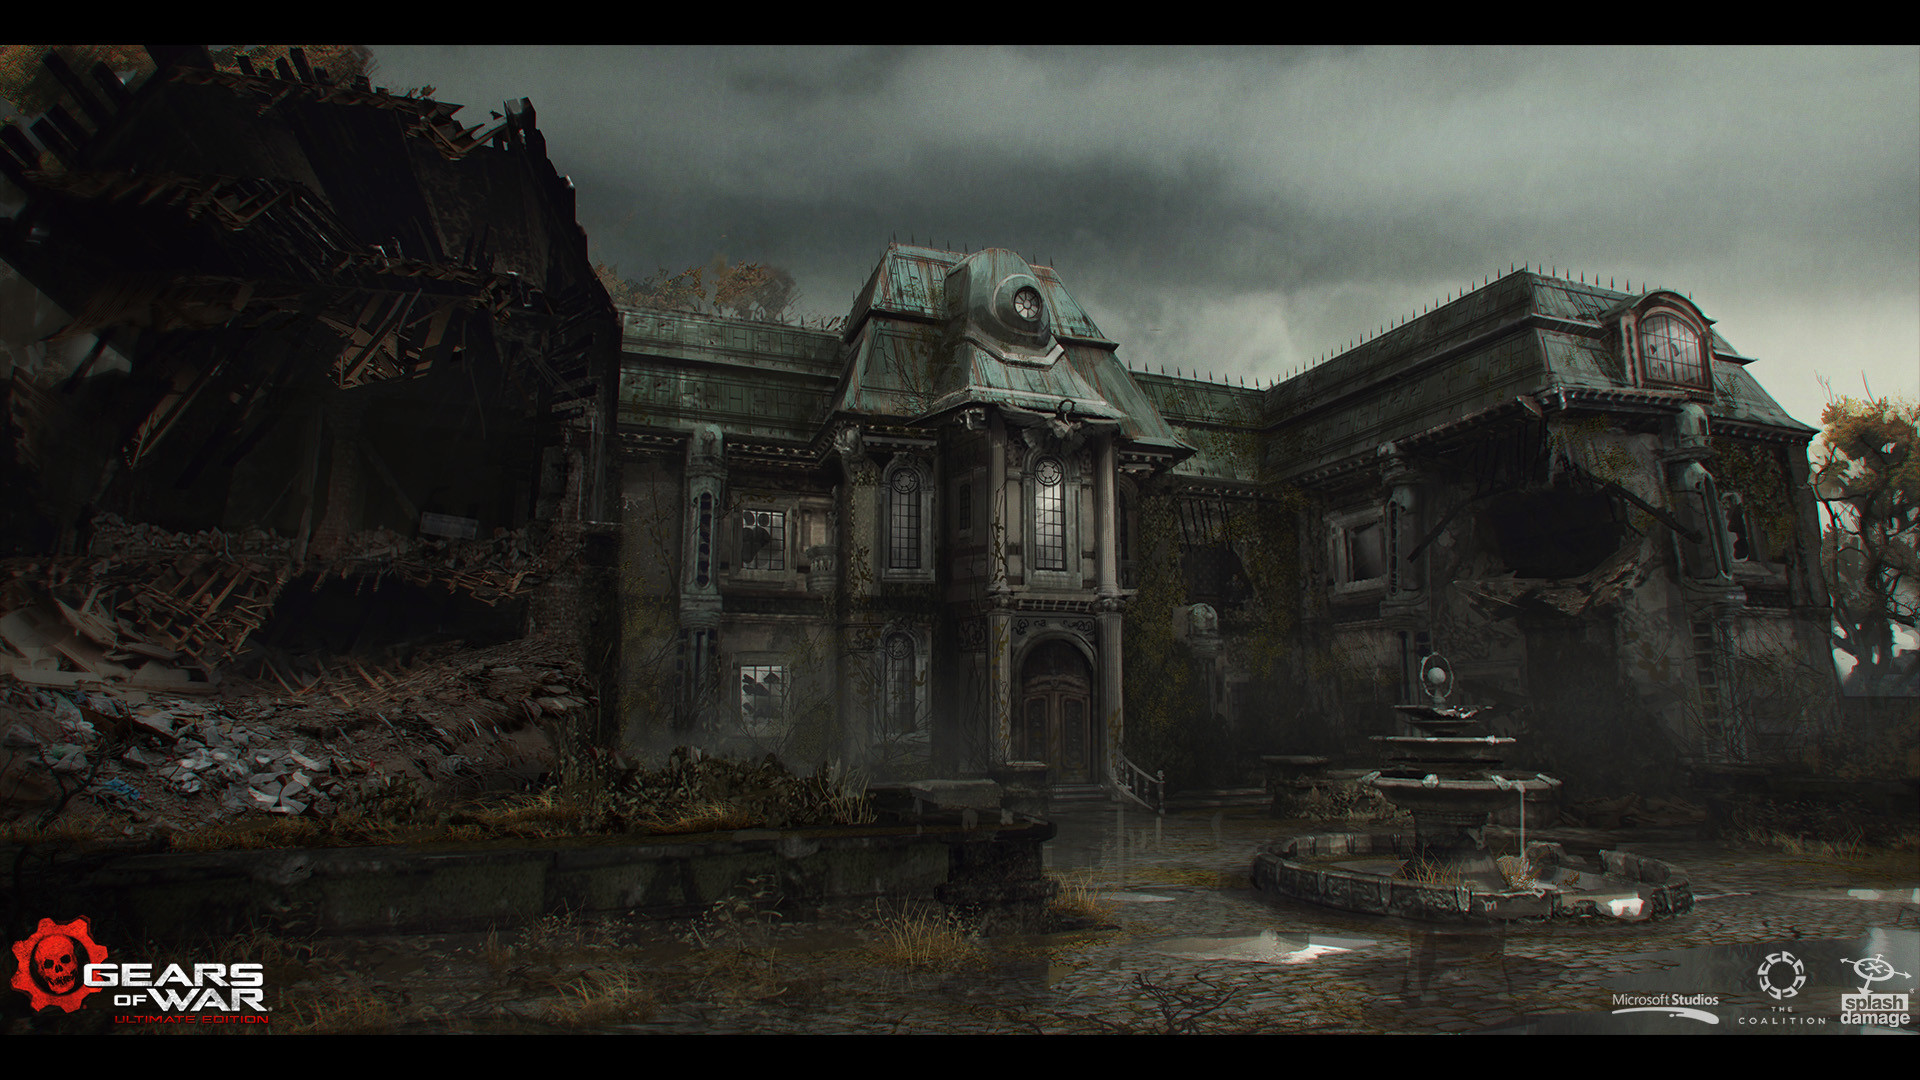 ArtStation - Gears of War: Ultimate Edition - Act 4 Environment